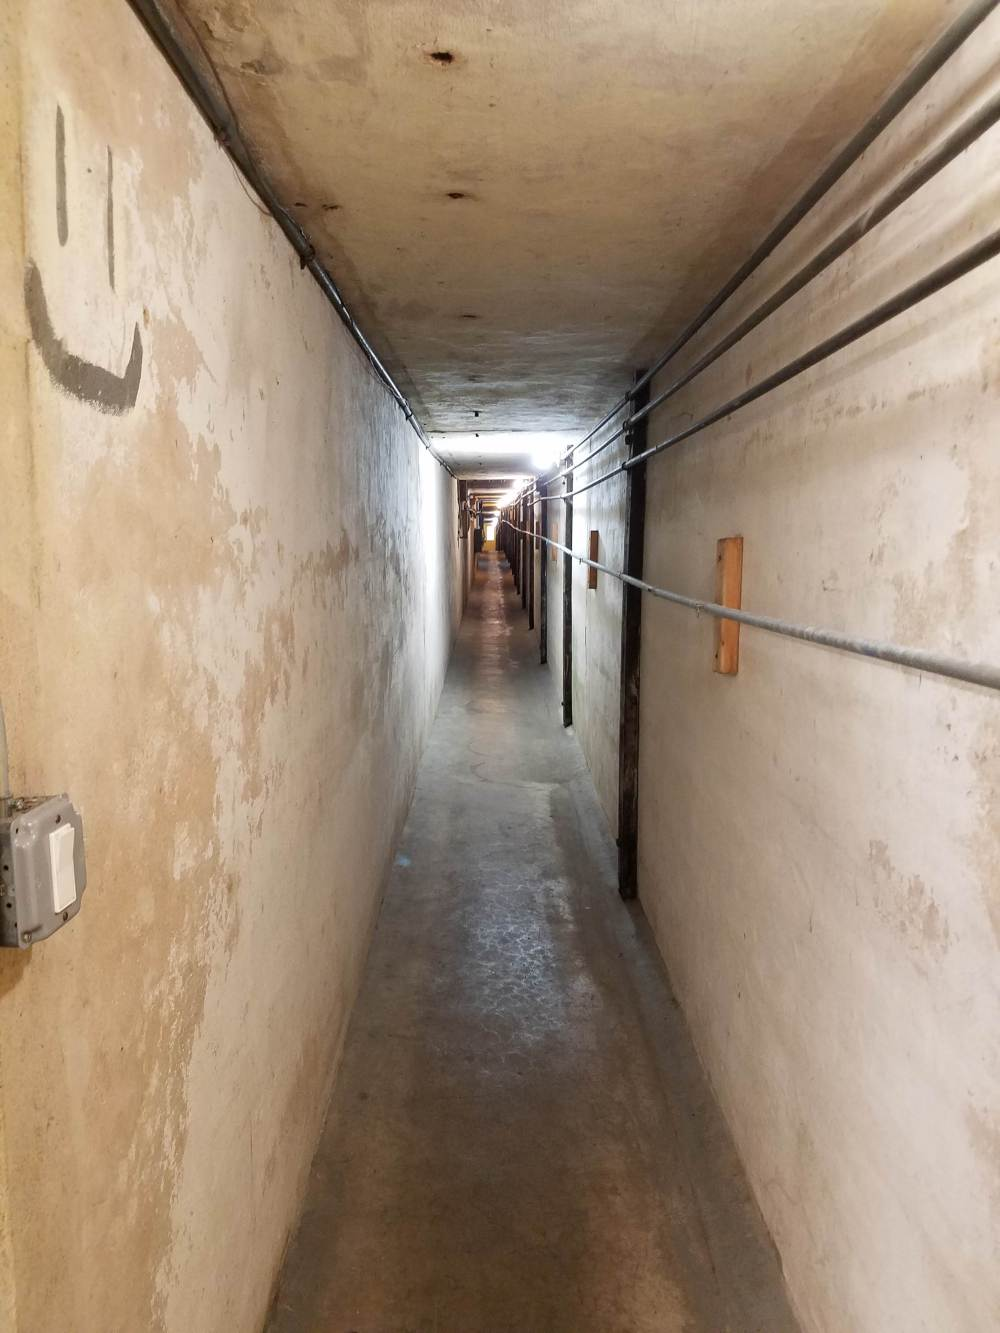 Webb Institute Tunnel to Laundry Room